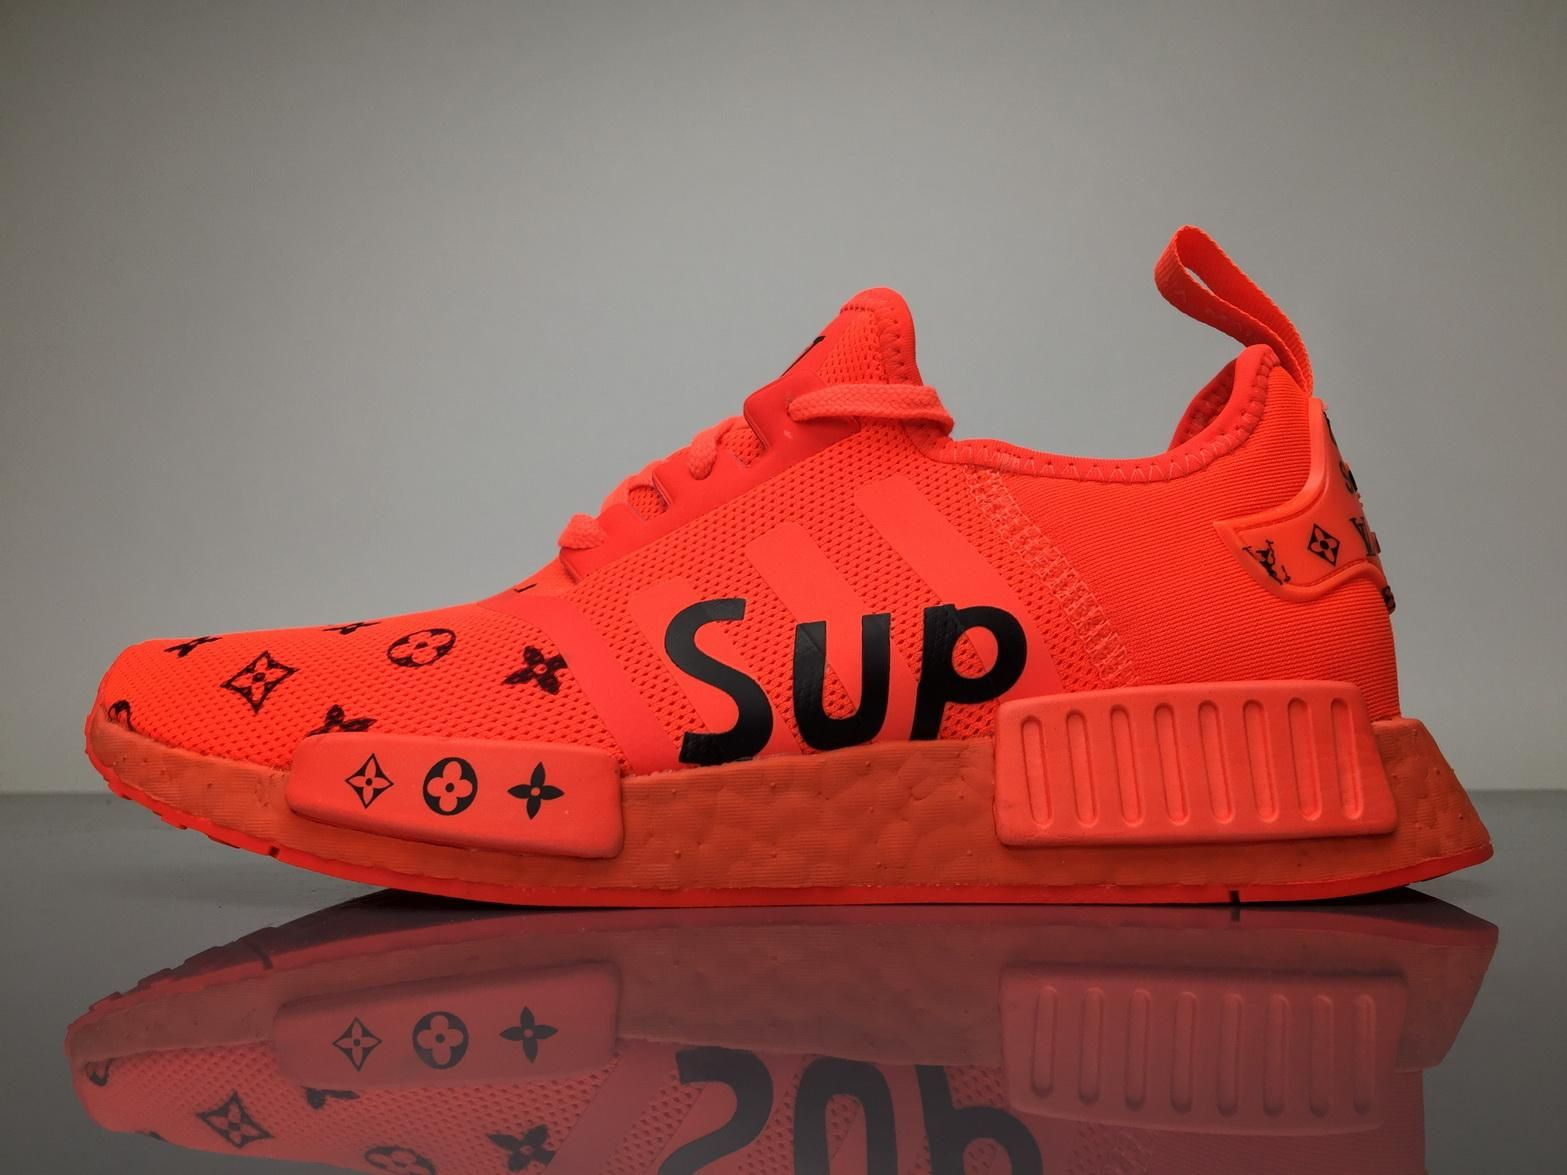 buy online 48537 159ad LOUIS VUITTON X SUPREME X ADIDAS NMD